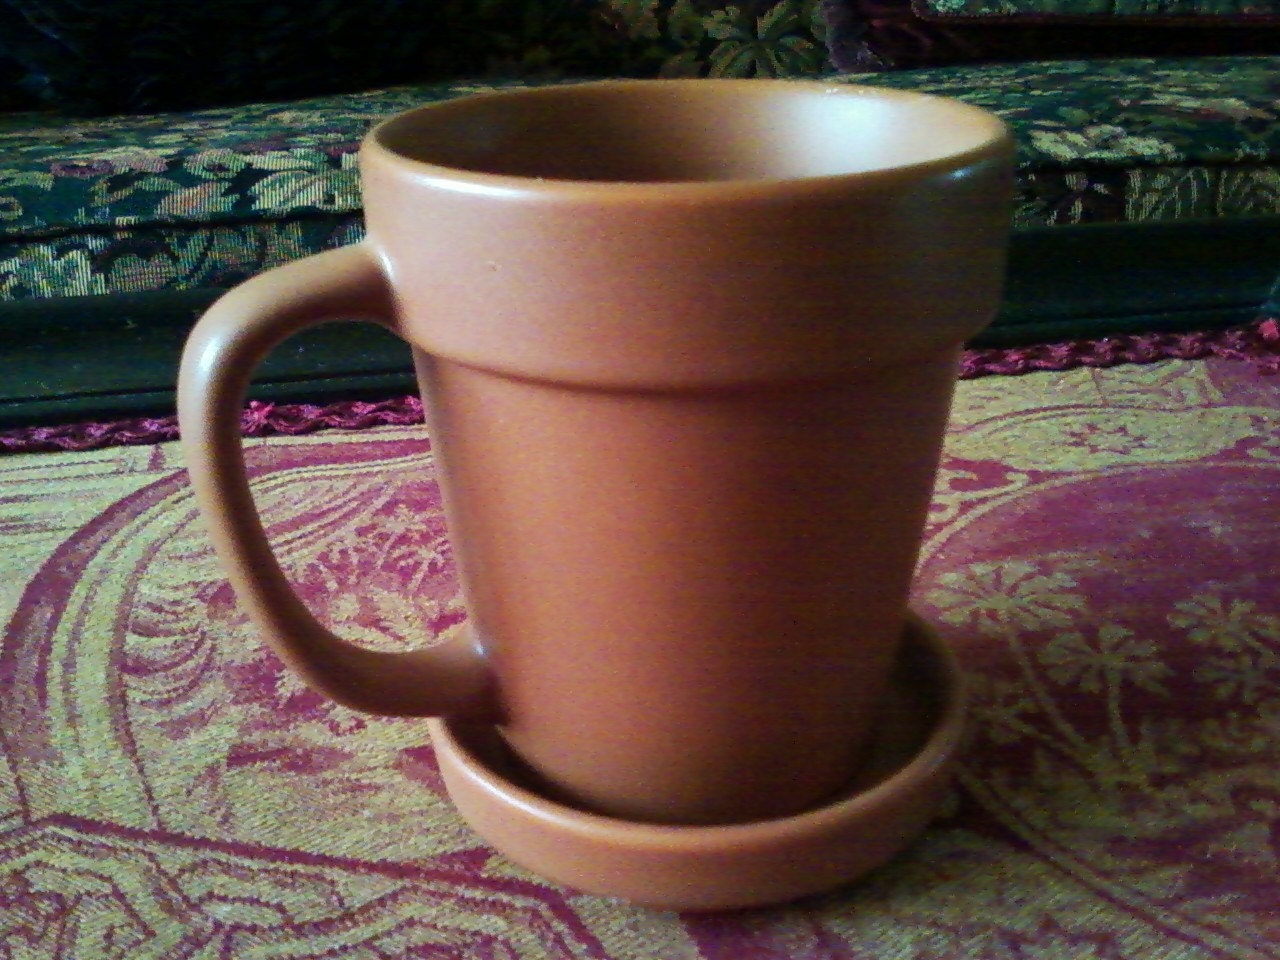 Terra Cotta Coffee Mug With Saucer By Honeysdaughter On Etsy